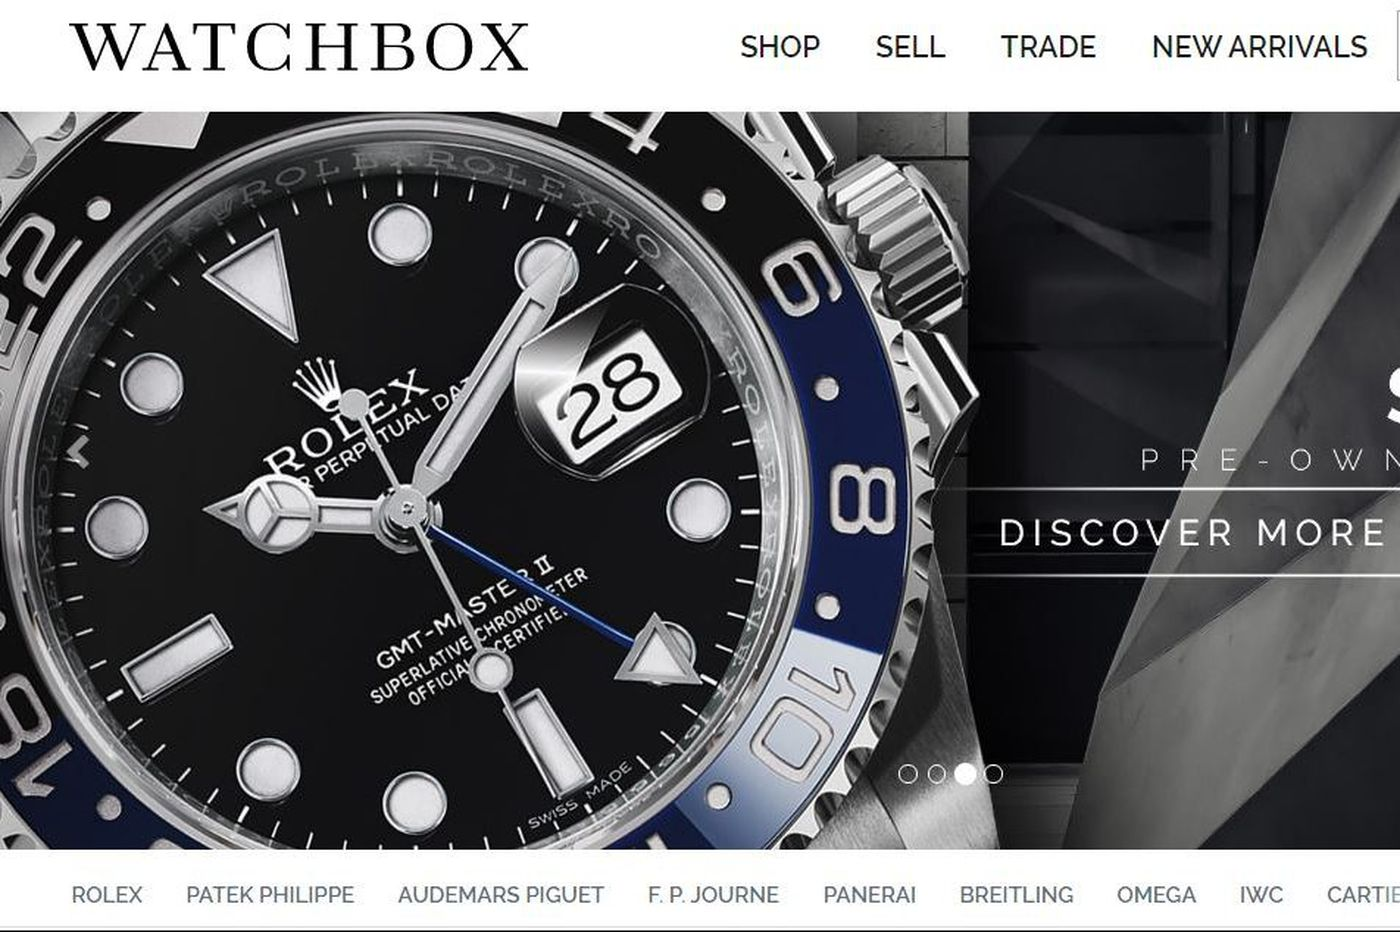 Govberg Jewelers' WatchBox market goes global with Asia partners